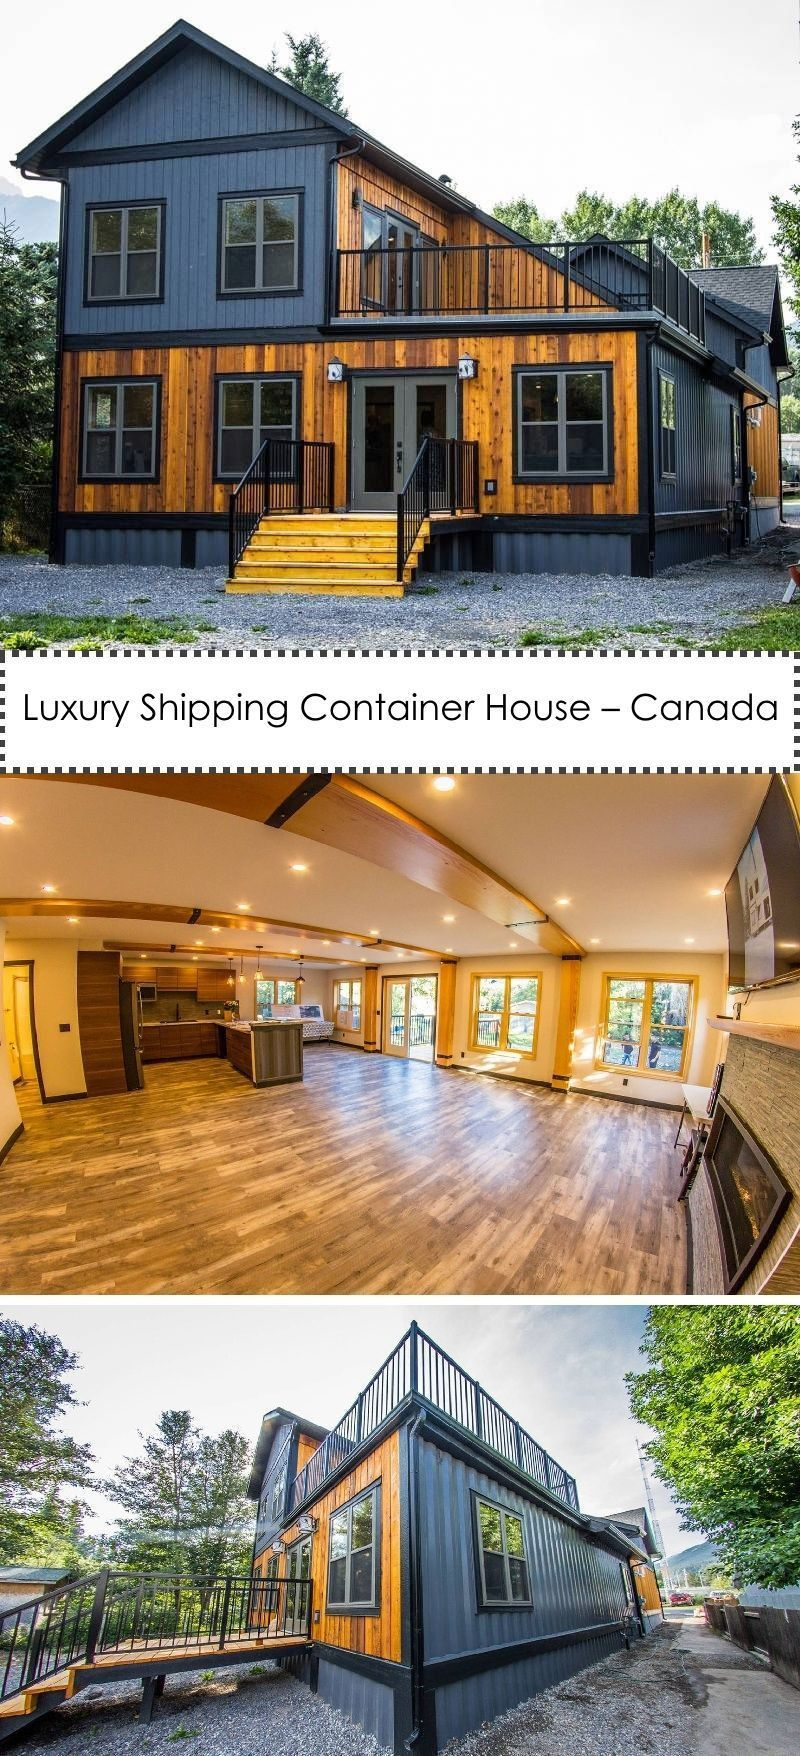 Home Building Plans Canada 2020 Shipping Container Home Designs Container House Container House Plans